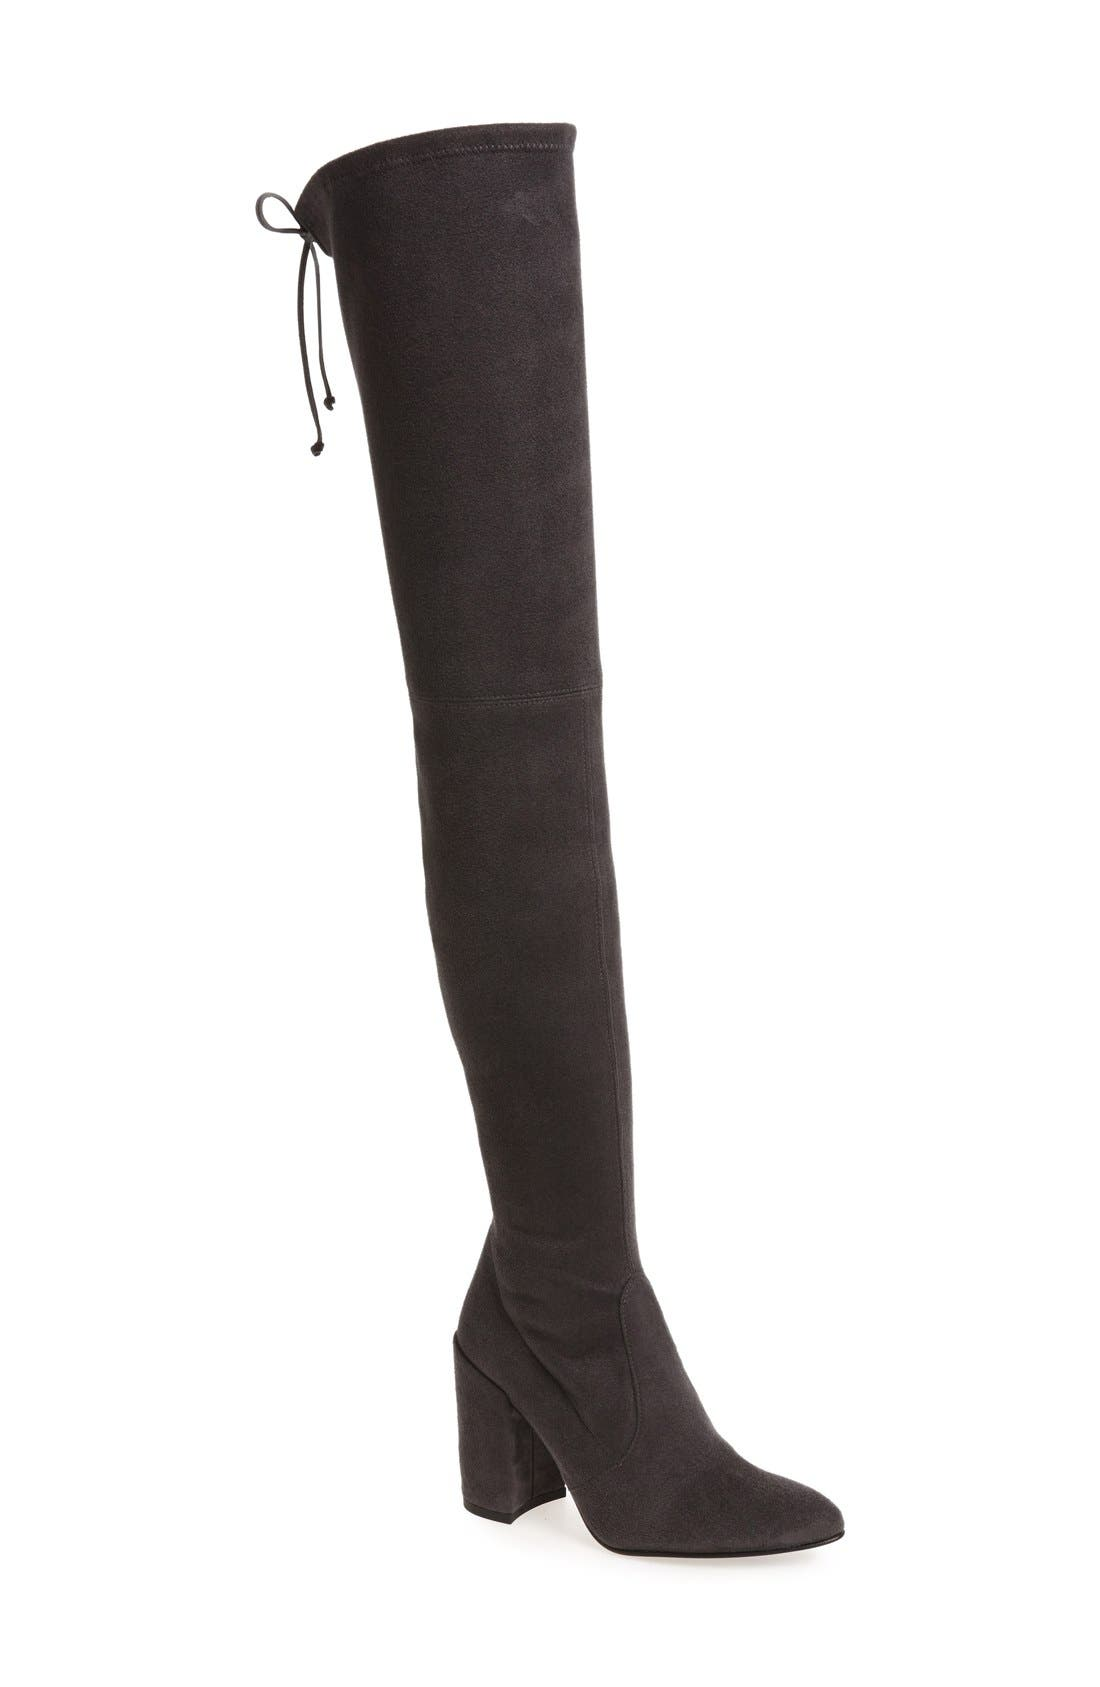 Main Image - Stuart Weitzman 'All Legs' Thigh High Boot (Women)